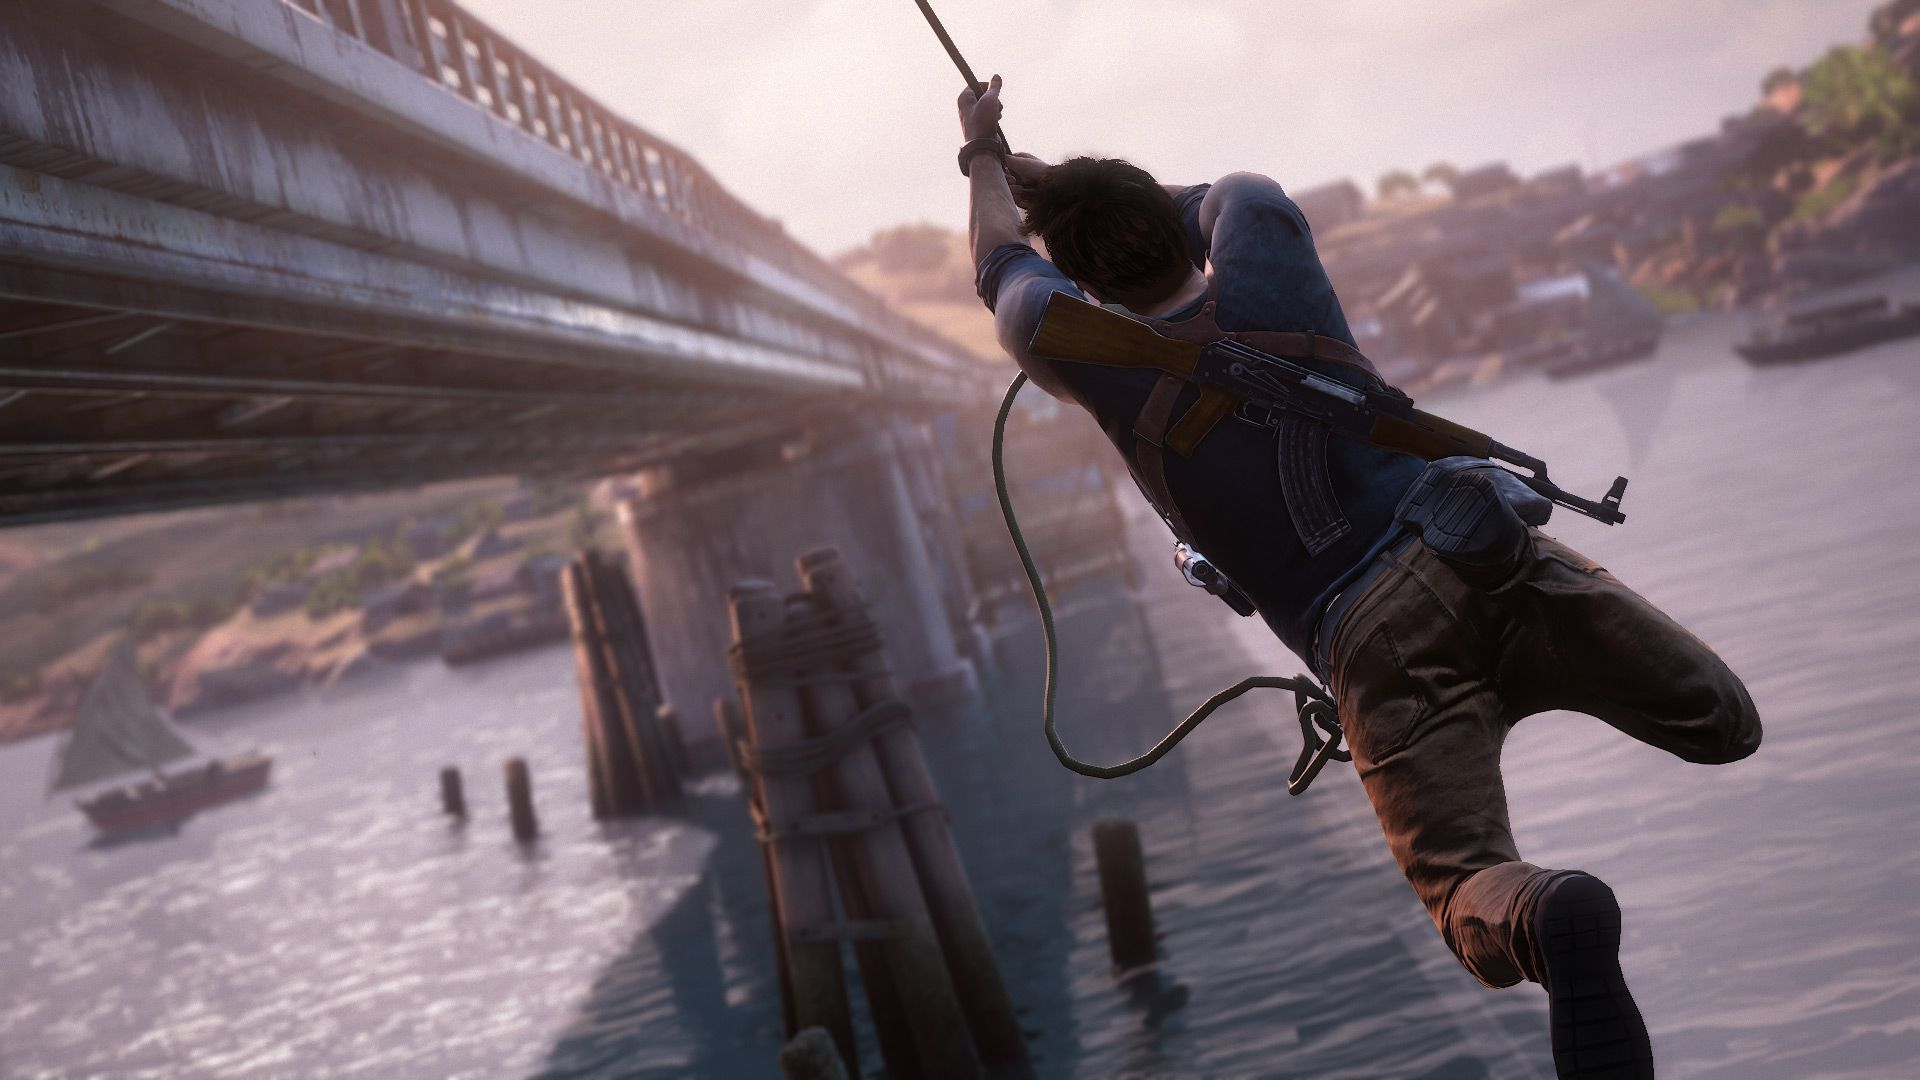 How Uncharted 4 will give you the freedom to explore Nathan Drake's final journey | Polygon